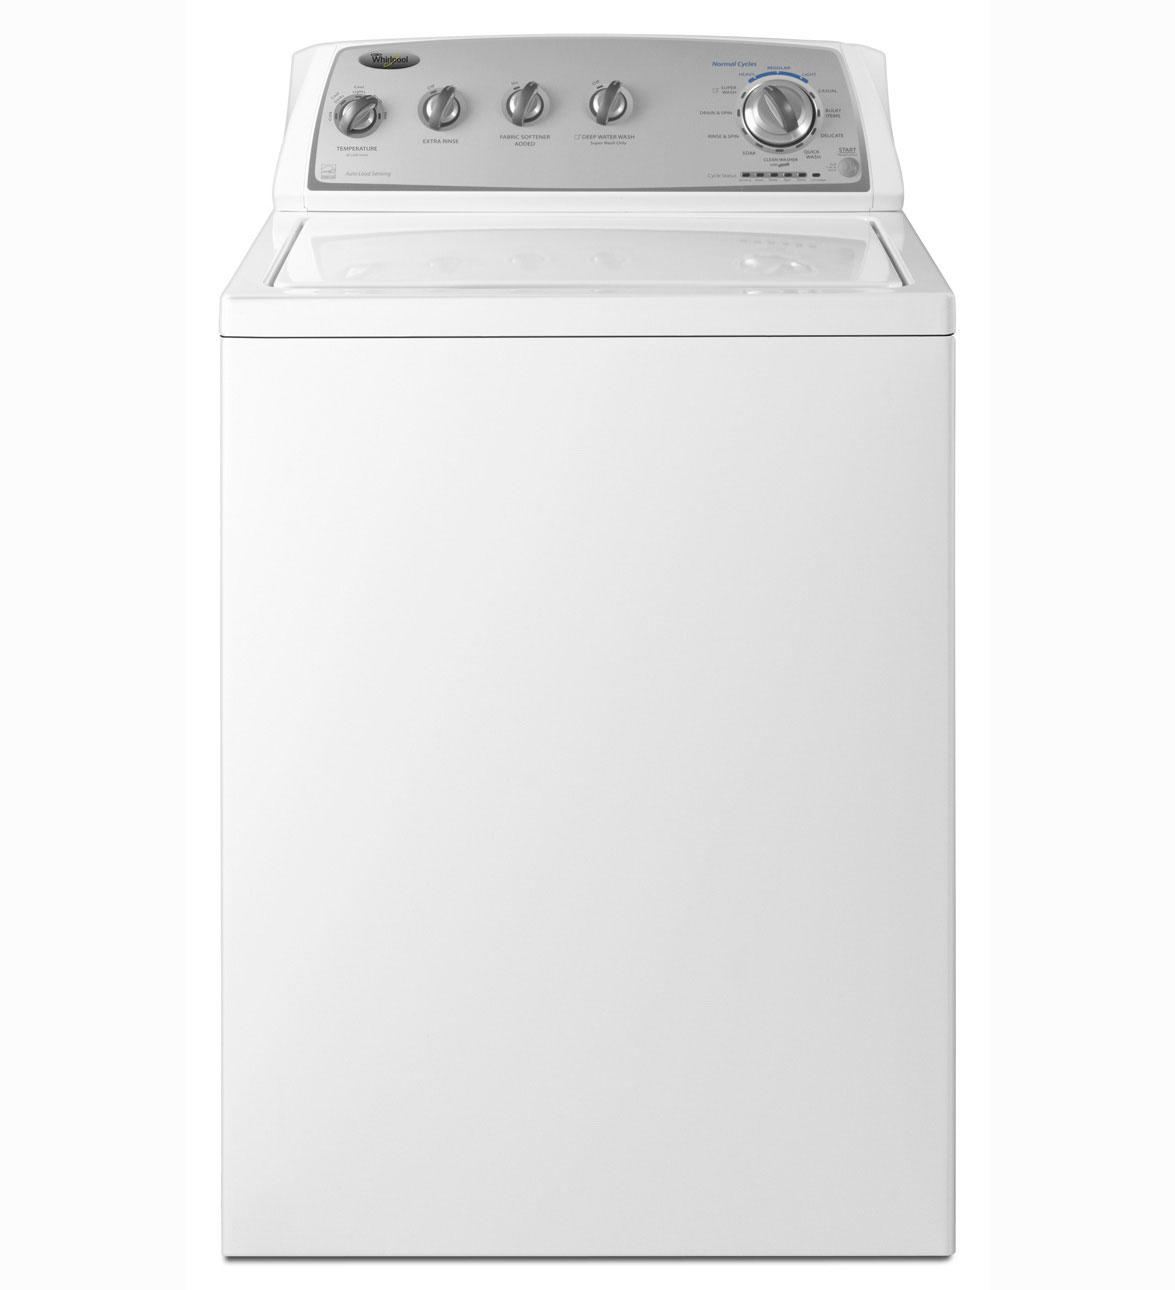 Reliable Appliance Service & Dryer Venting image 6